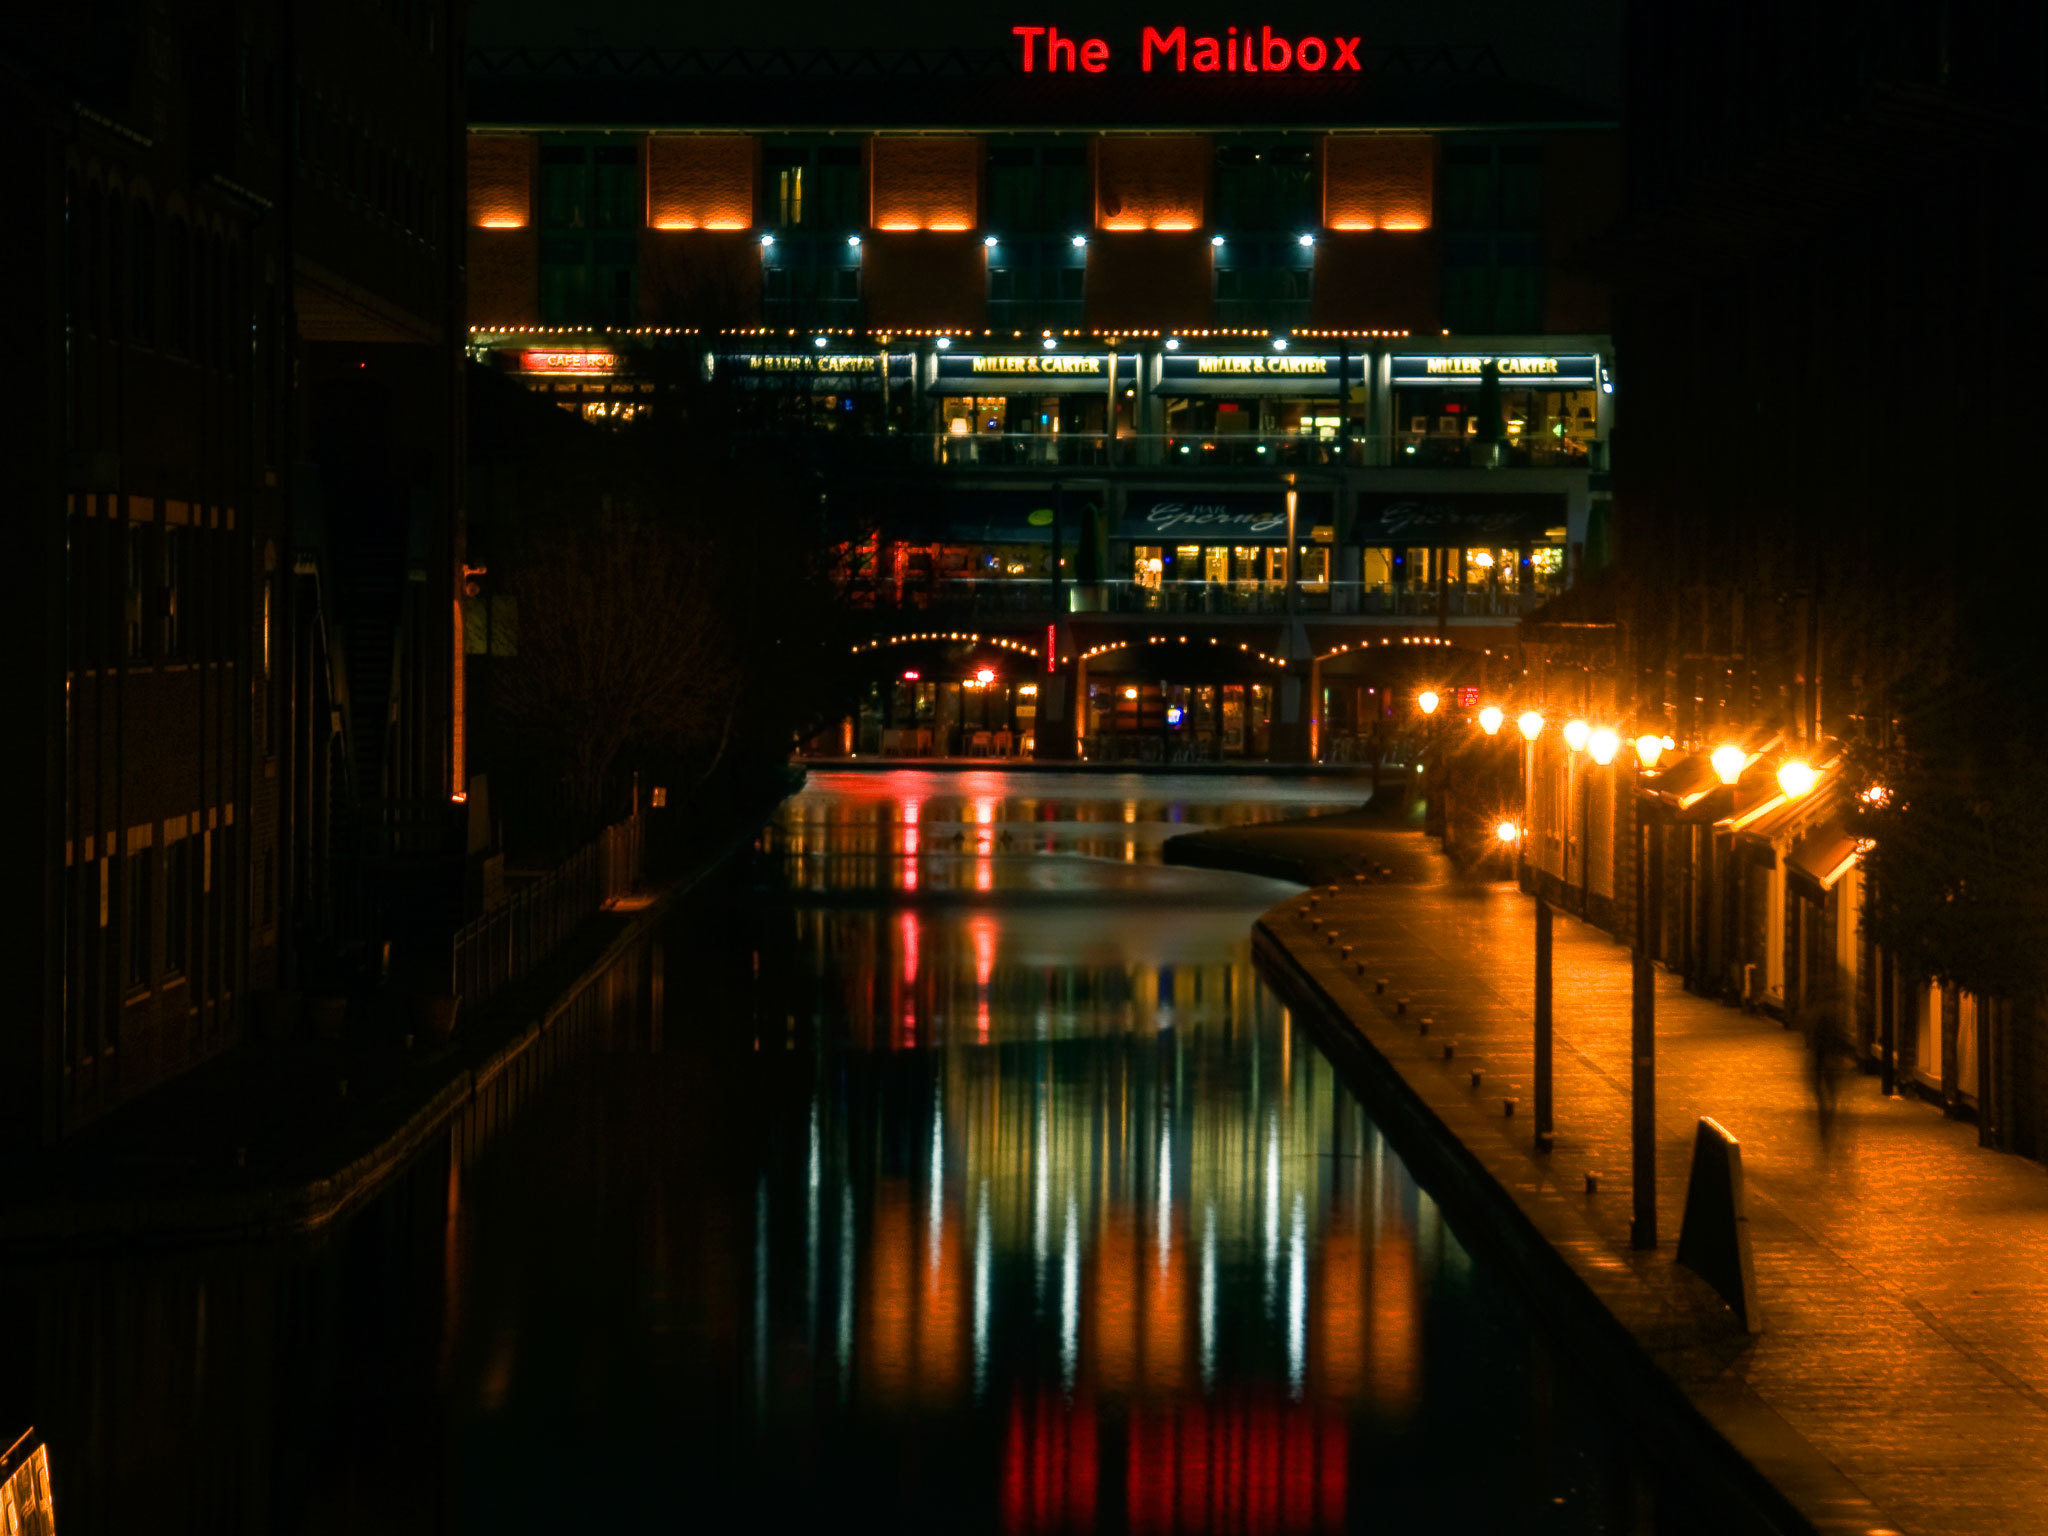 The Mailbox at night